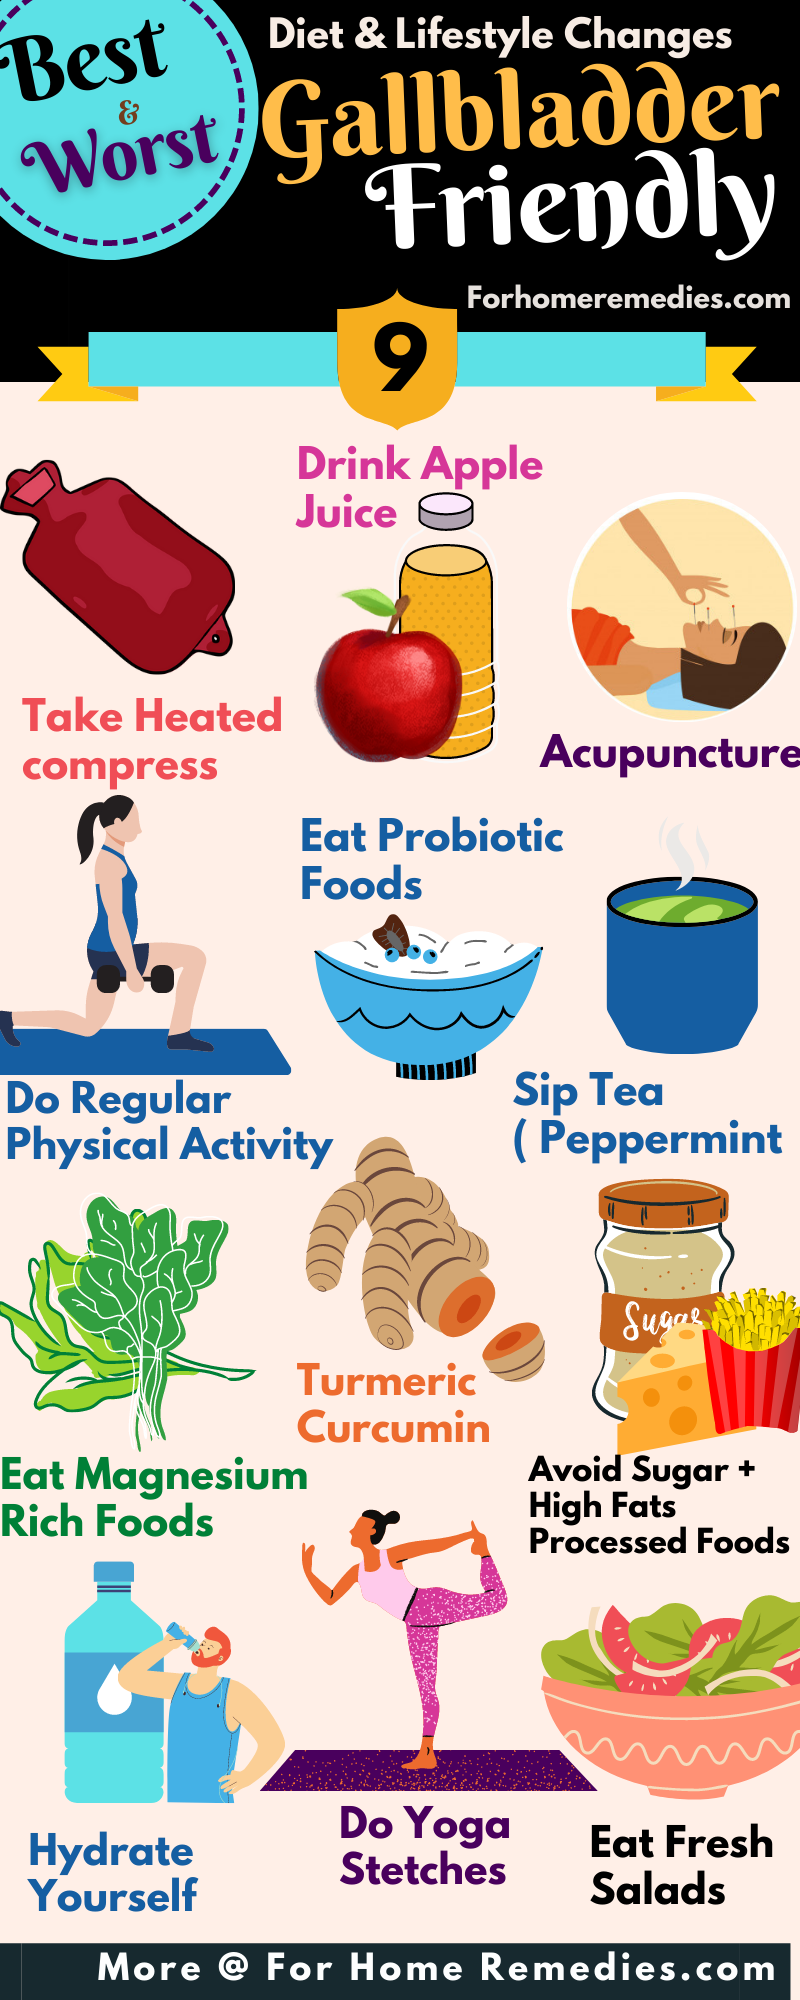 Gallbladder Friendly Diet and Best Foods for Gallstones - Lifestyle Changes & Foods to Avoid